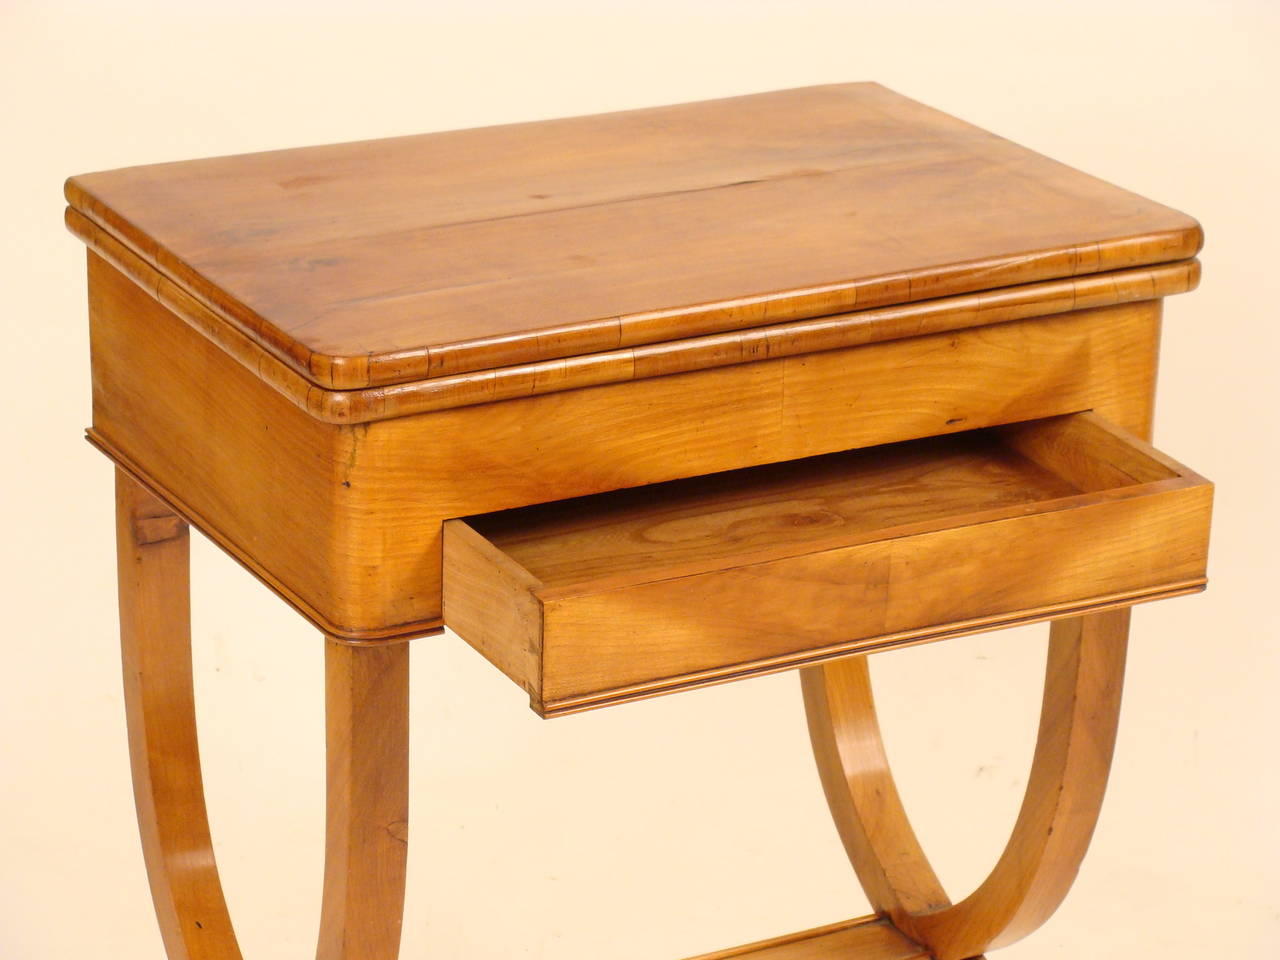 Louis philippe style games table at 1stdibs - Table basse louis philippe ...